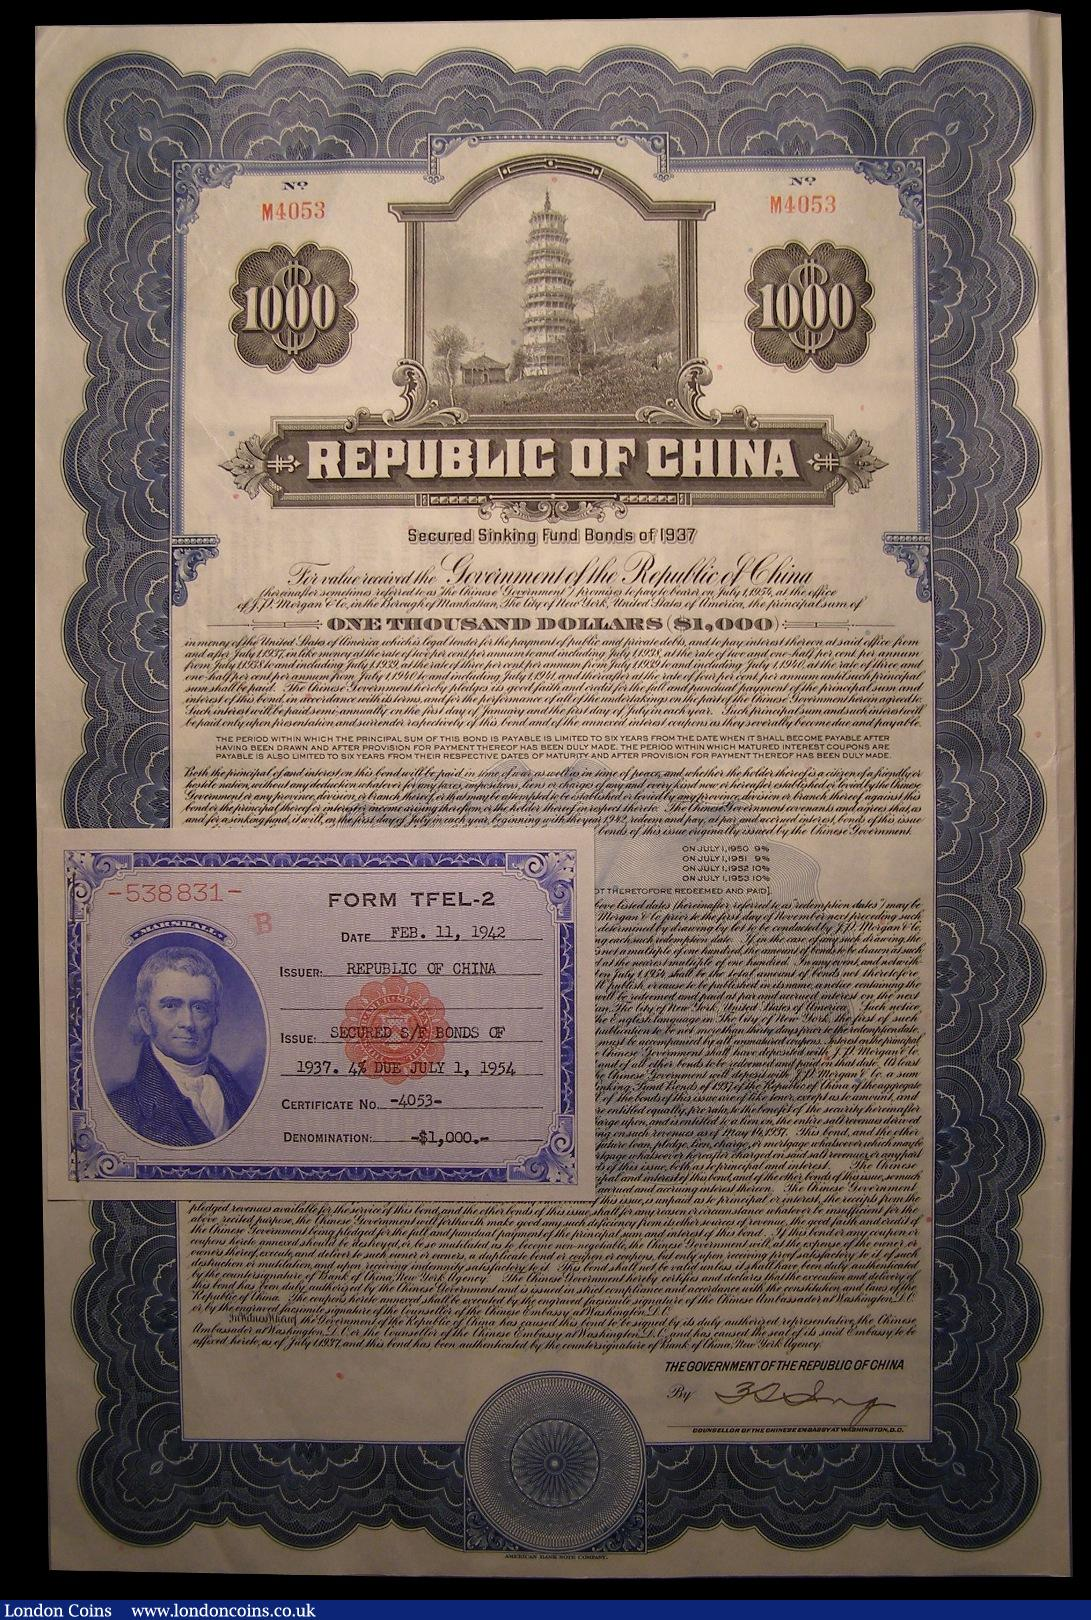 CHINA GOVERNMENT 1911 HUKUANG RAILWAY £20 BOND WITH COUPONS  BY BANQUE INDOCHINE